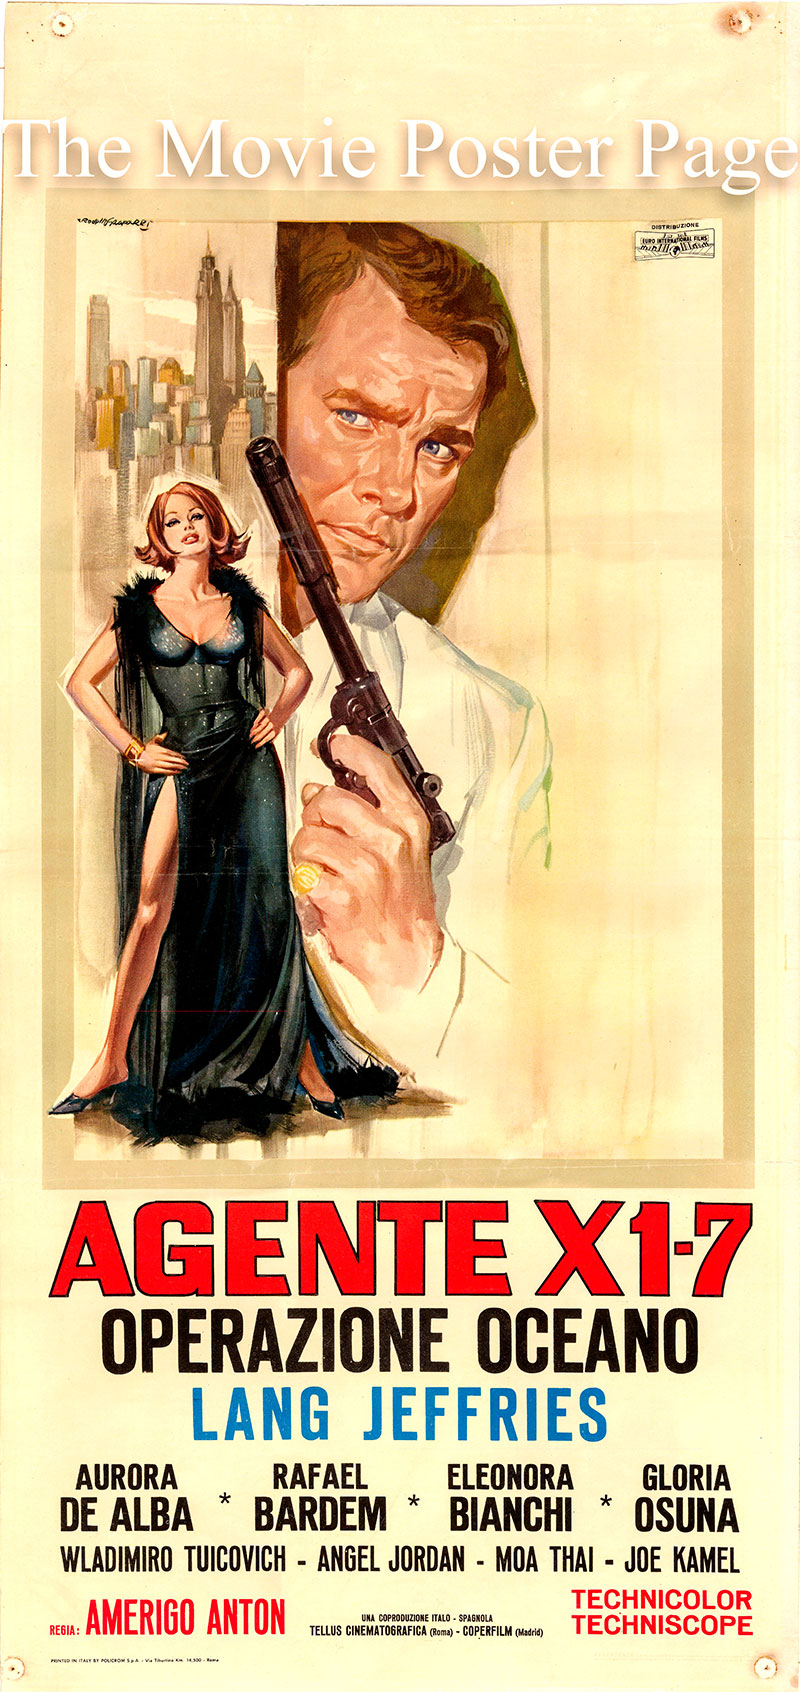 Pictured is an Italian locandina poster for the 1965 Tanio Boccia film Agente X 1-7 operazione Oceano starring Lang Jeffries as George Collins.